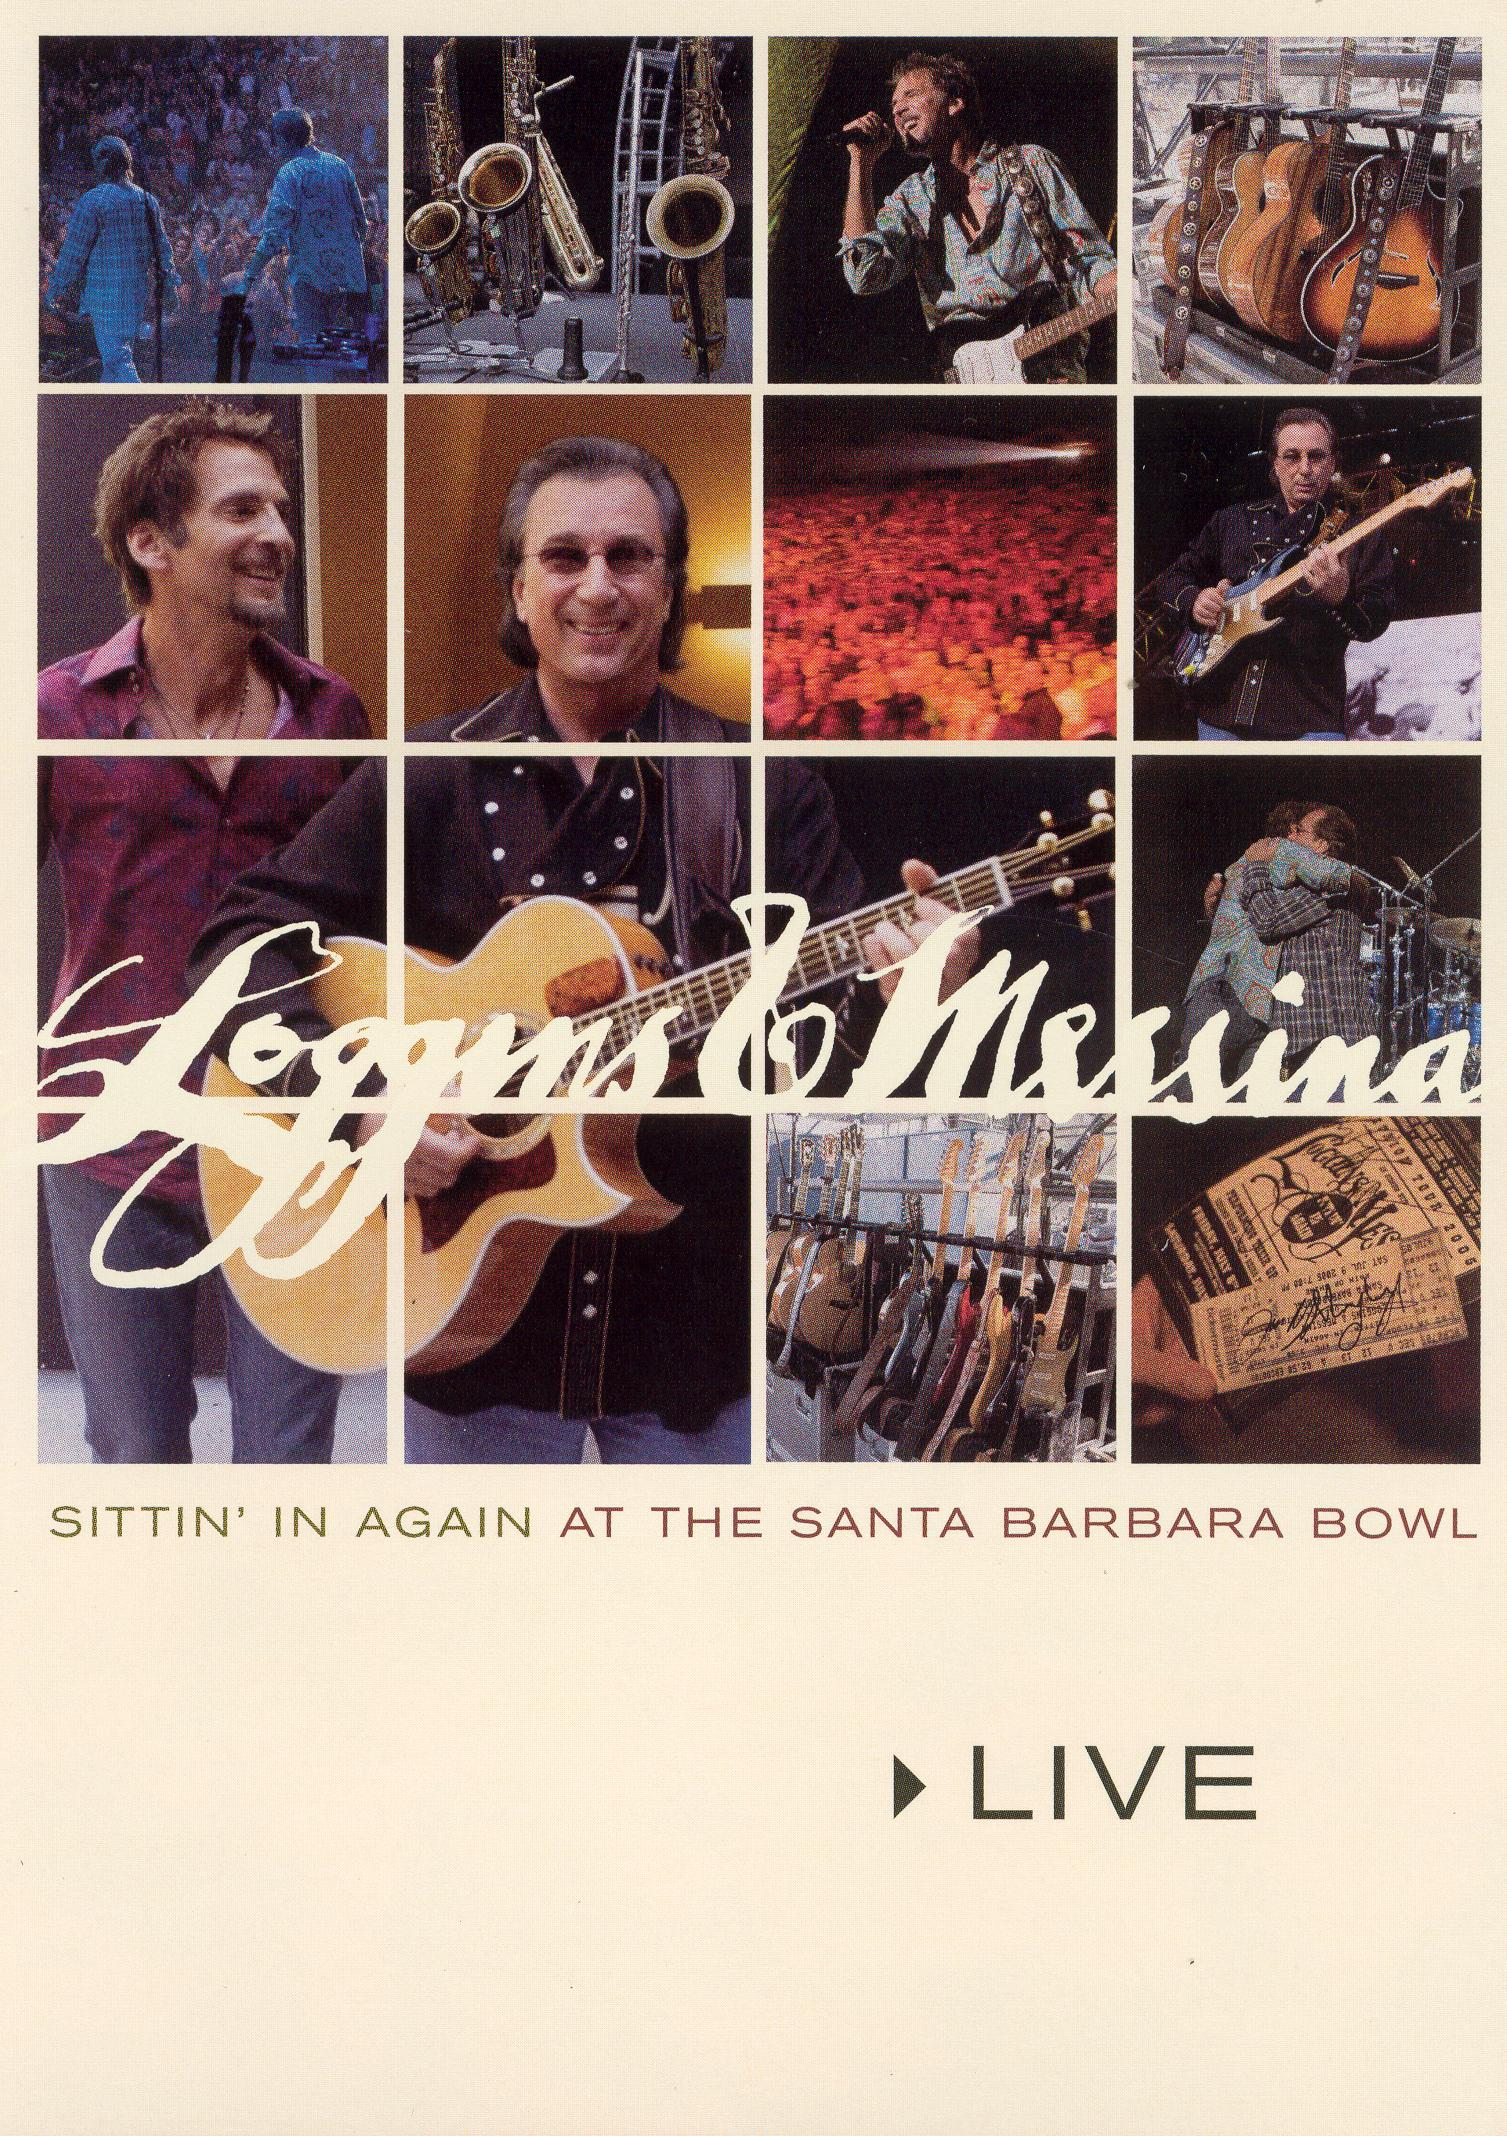 Loggins and Messina: Live: Sittin in Again at Santa Barbara Bowl